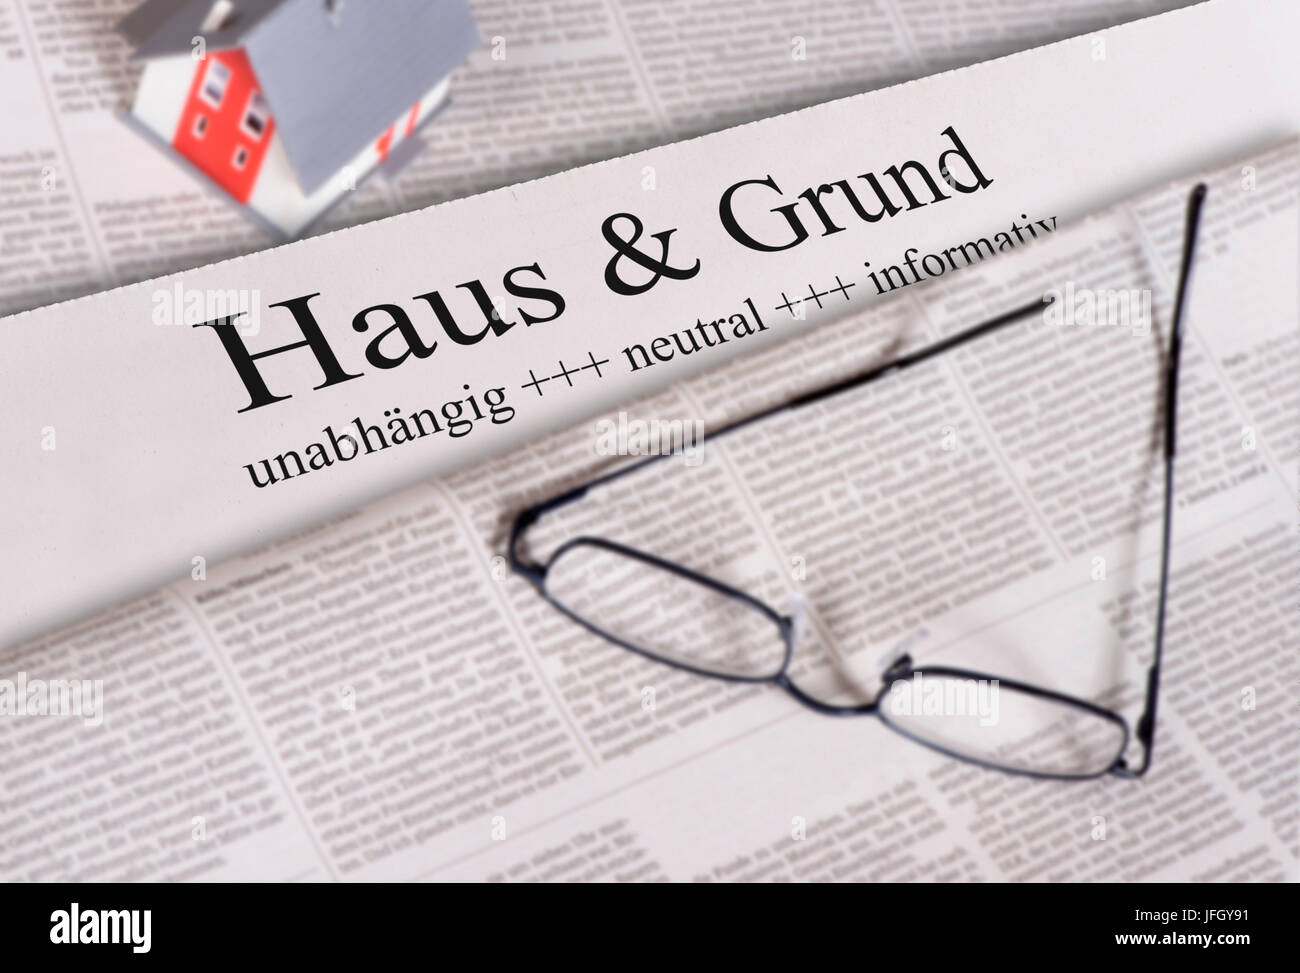 Newspaper with heading house & ground - Stock Image